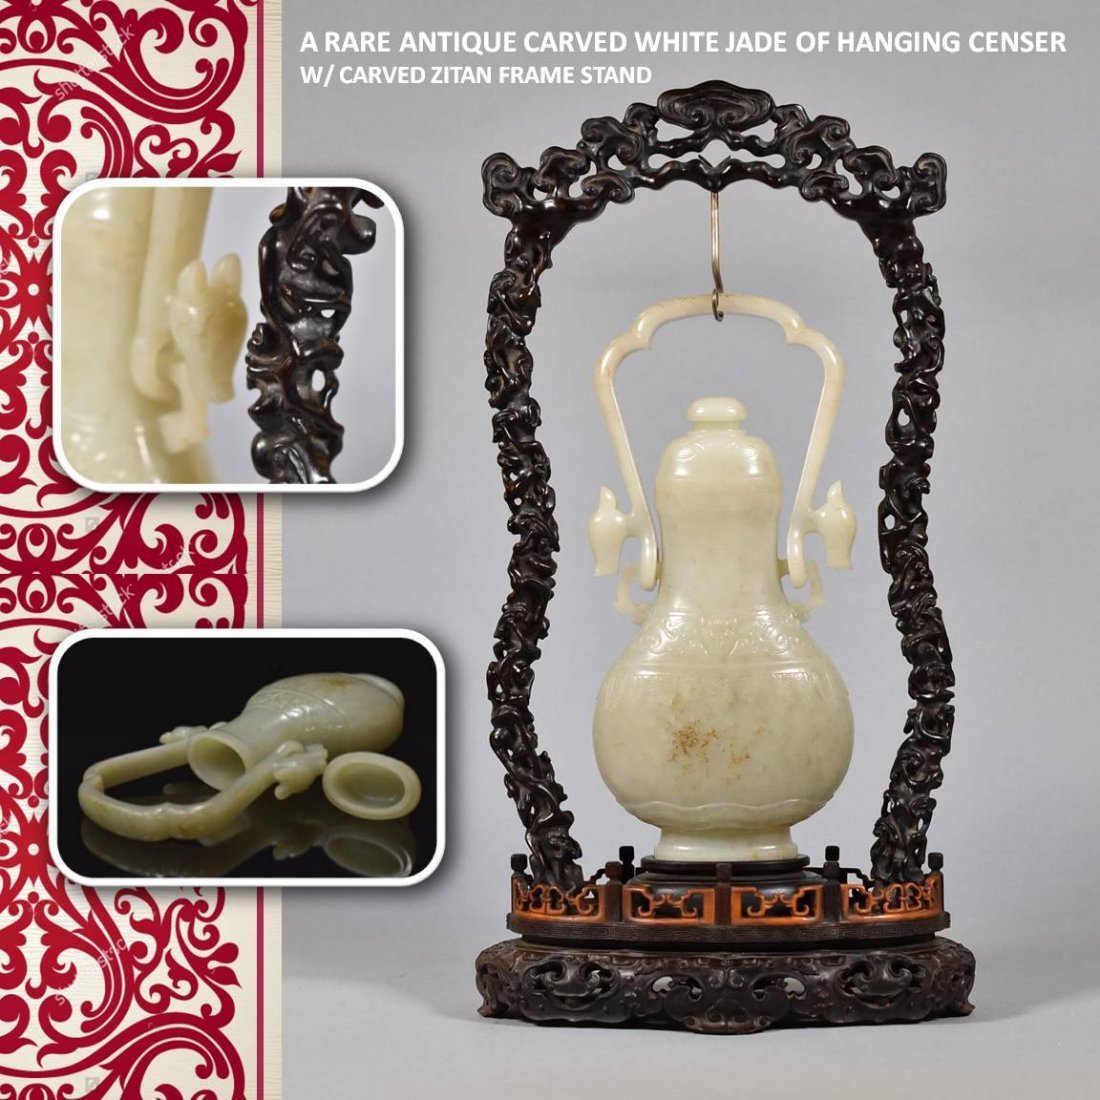 A RARE ANTIQUE CARVED WHITE JADE OF HANGING CENSER